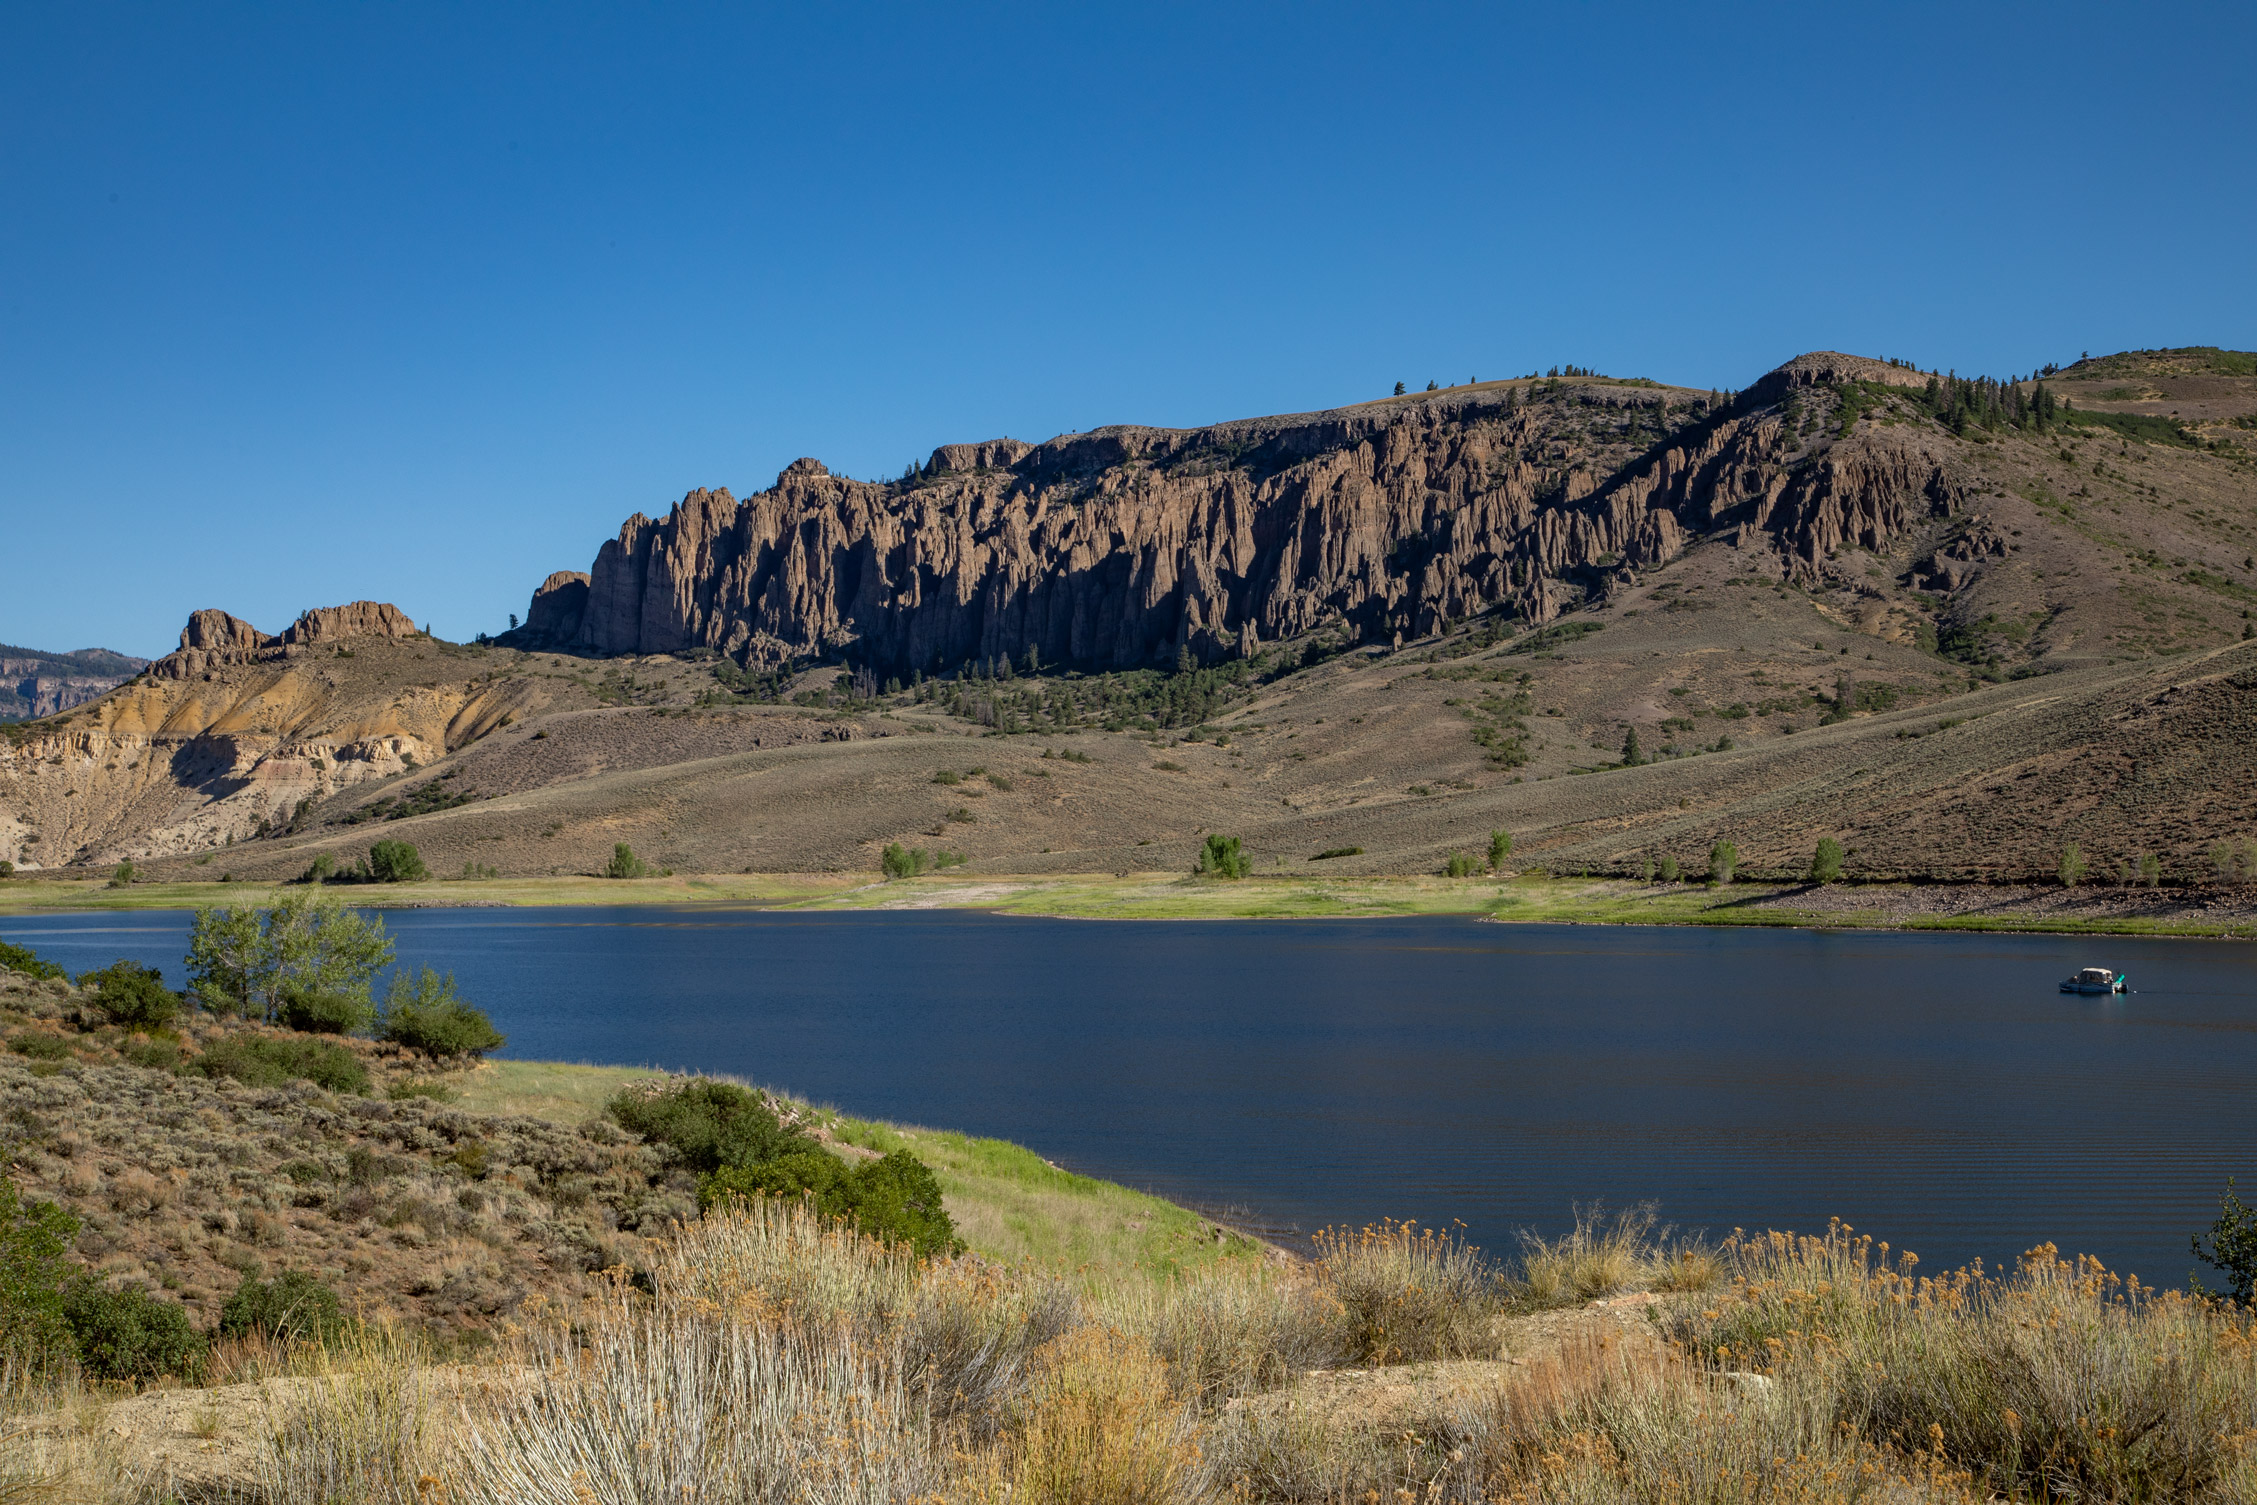 Gunnison river on the way to Black Canton National Park